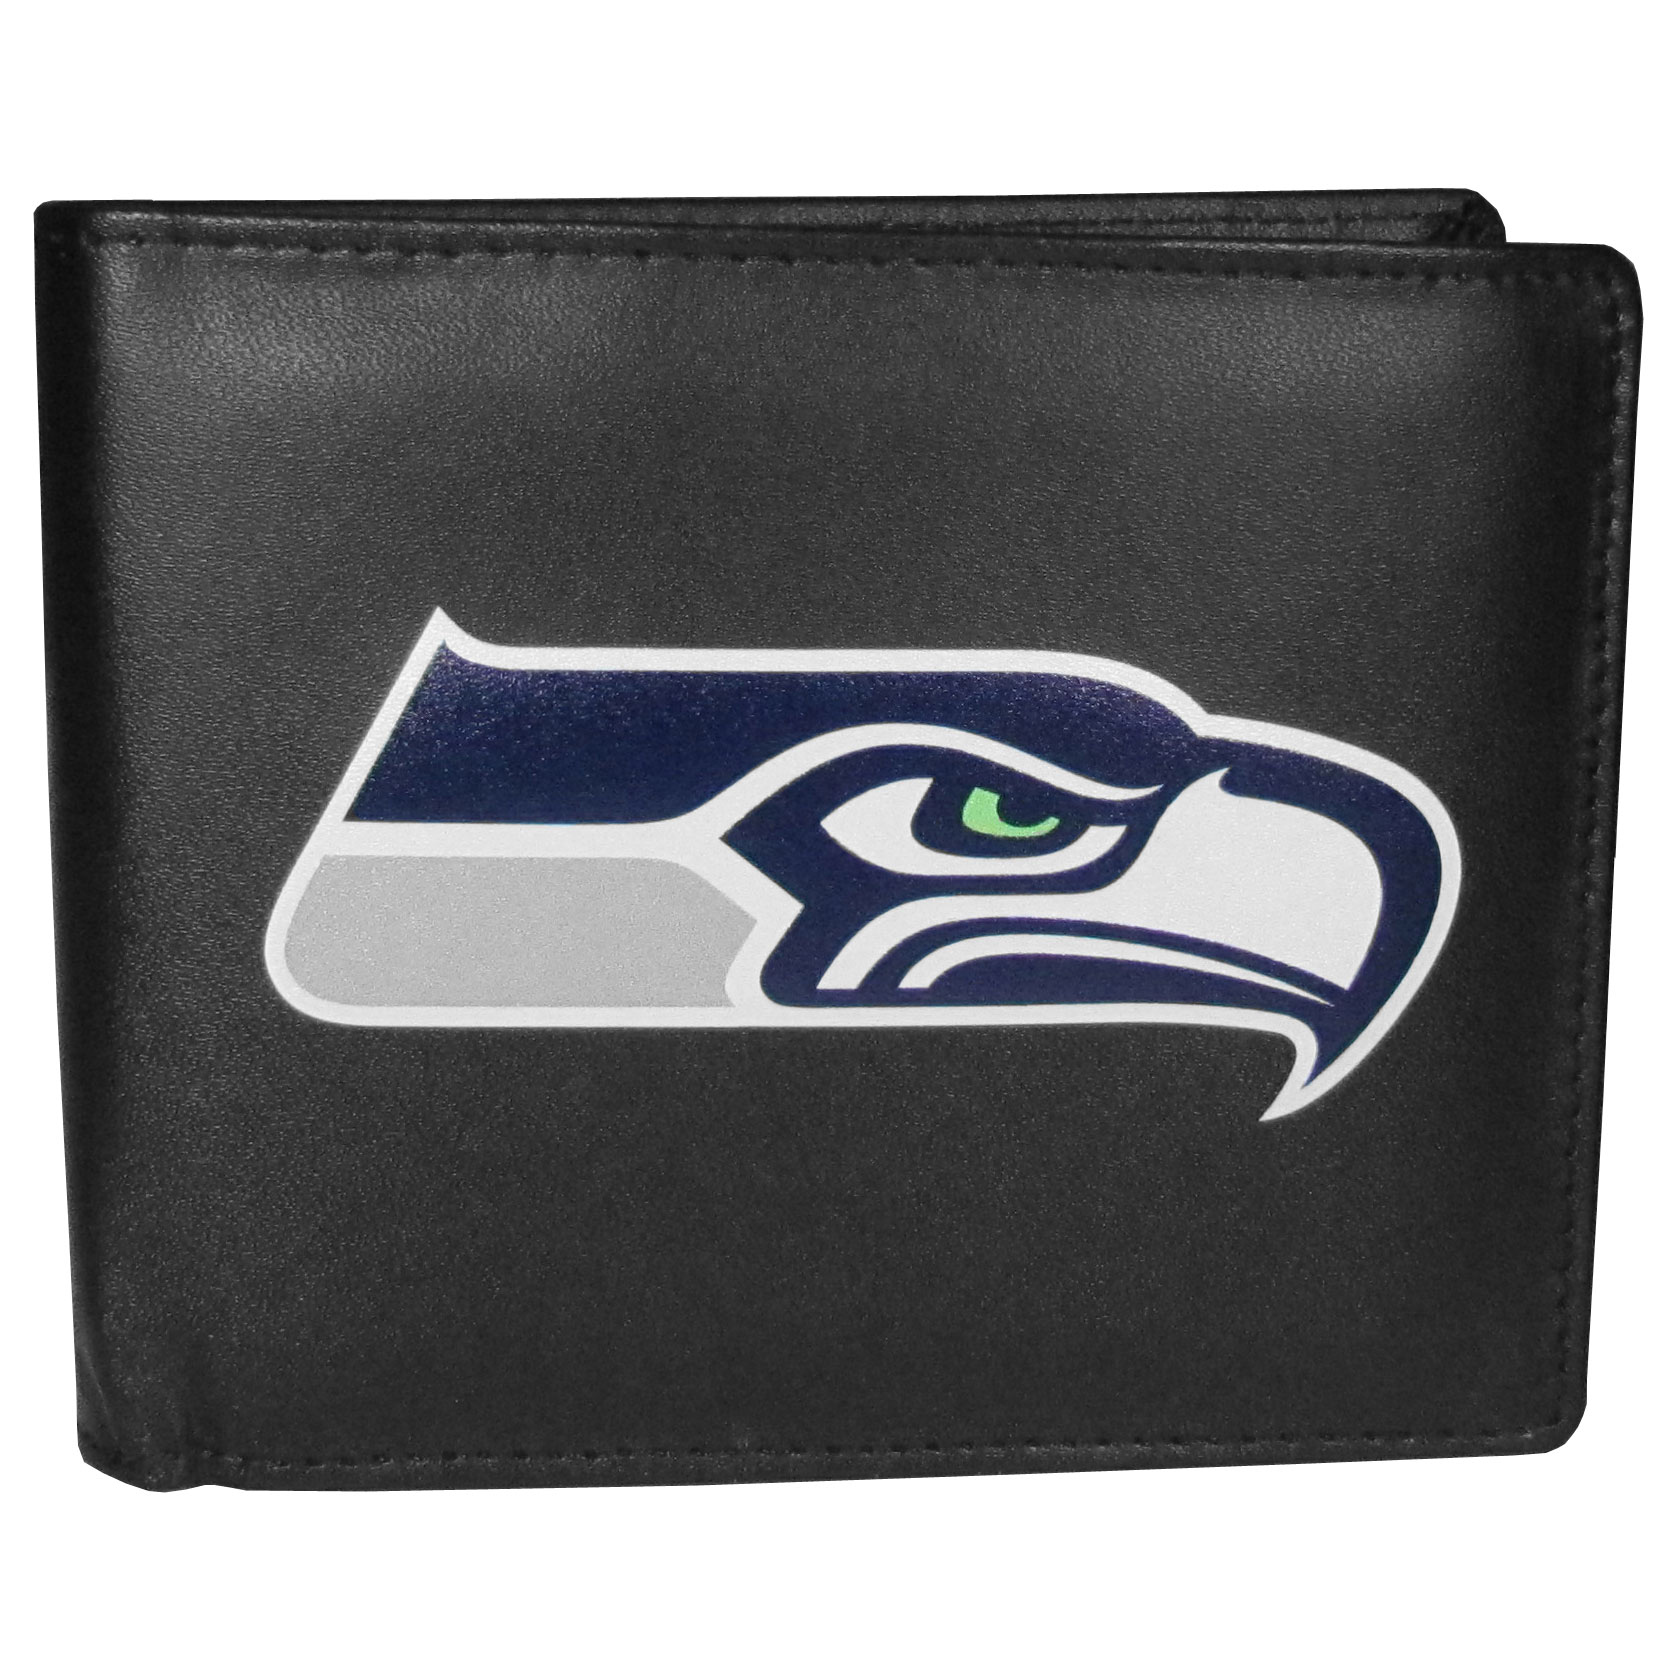 Seattle Seahawks Bi-fold Wallet Large Logo - Sports fans do not have to sacrifice style with this classic bi-fold wallet that sports the Seattle Seahawks extra large logo. This men's fashion accessory has a leather grain look and expert craftmanship for a quality wallet at a great price. The wallet features inner credit card slots, windowed ID slot and a large billfold pocket. The front of the wallet features a printed team logo.